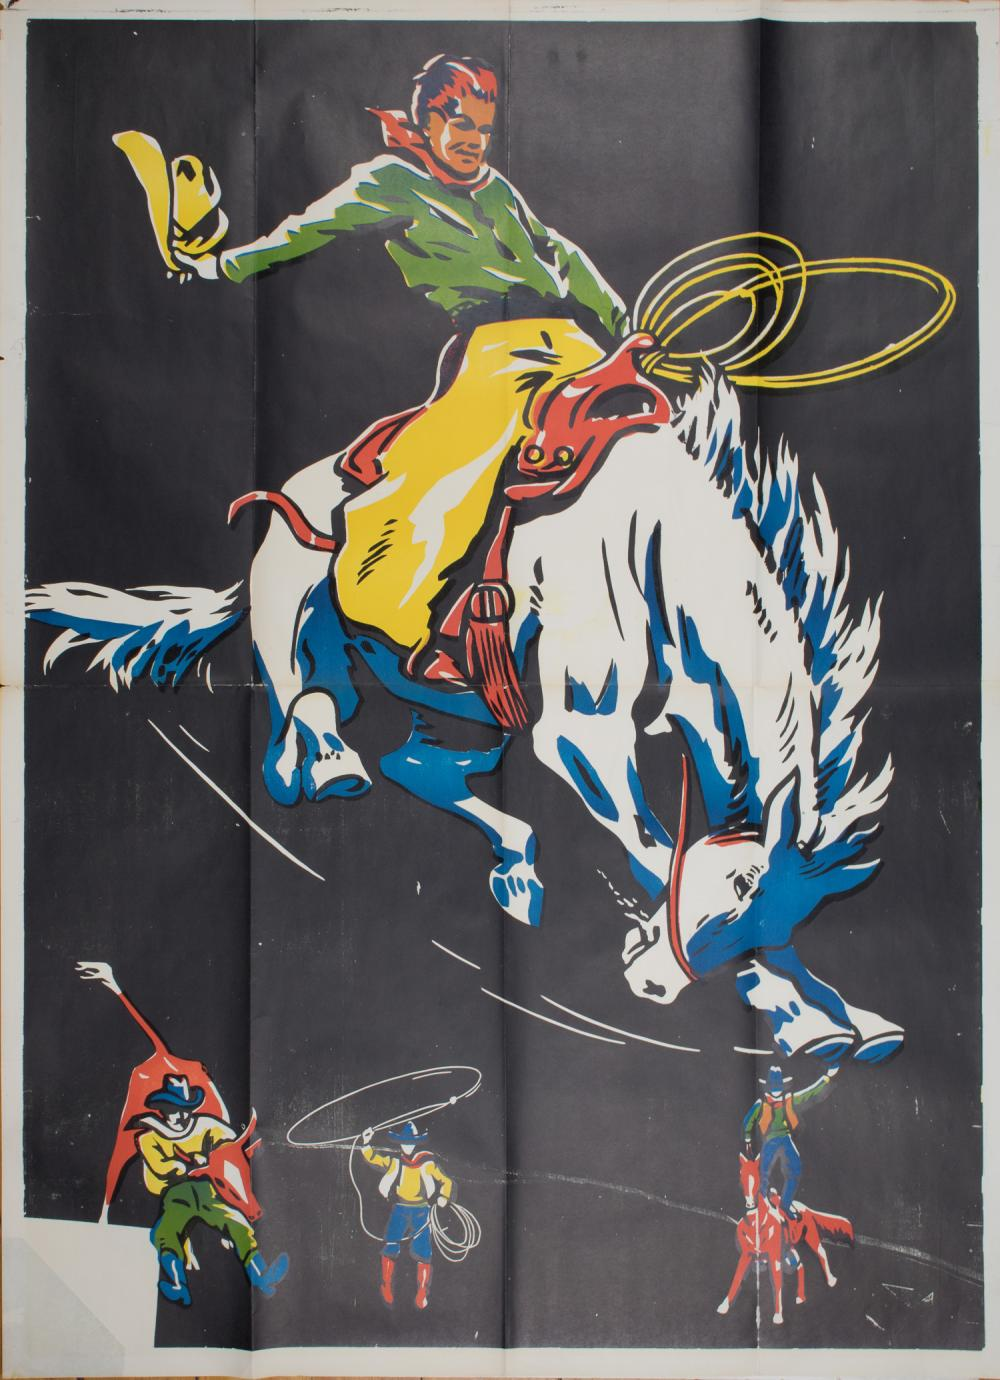 VINTAGE RODEO ADVERTISING POSTER, CA. 1940